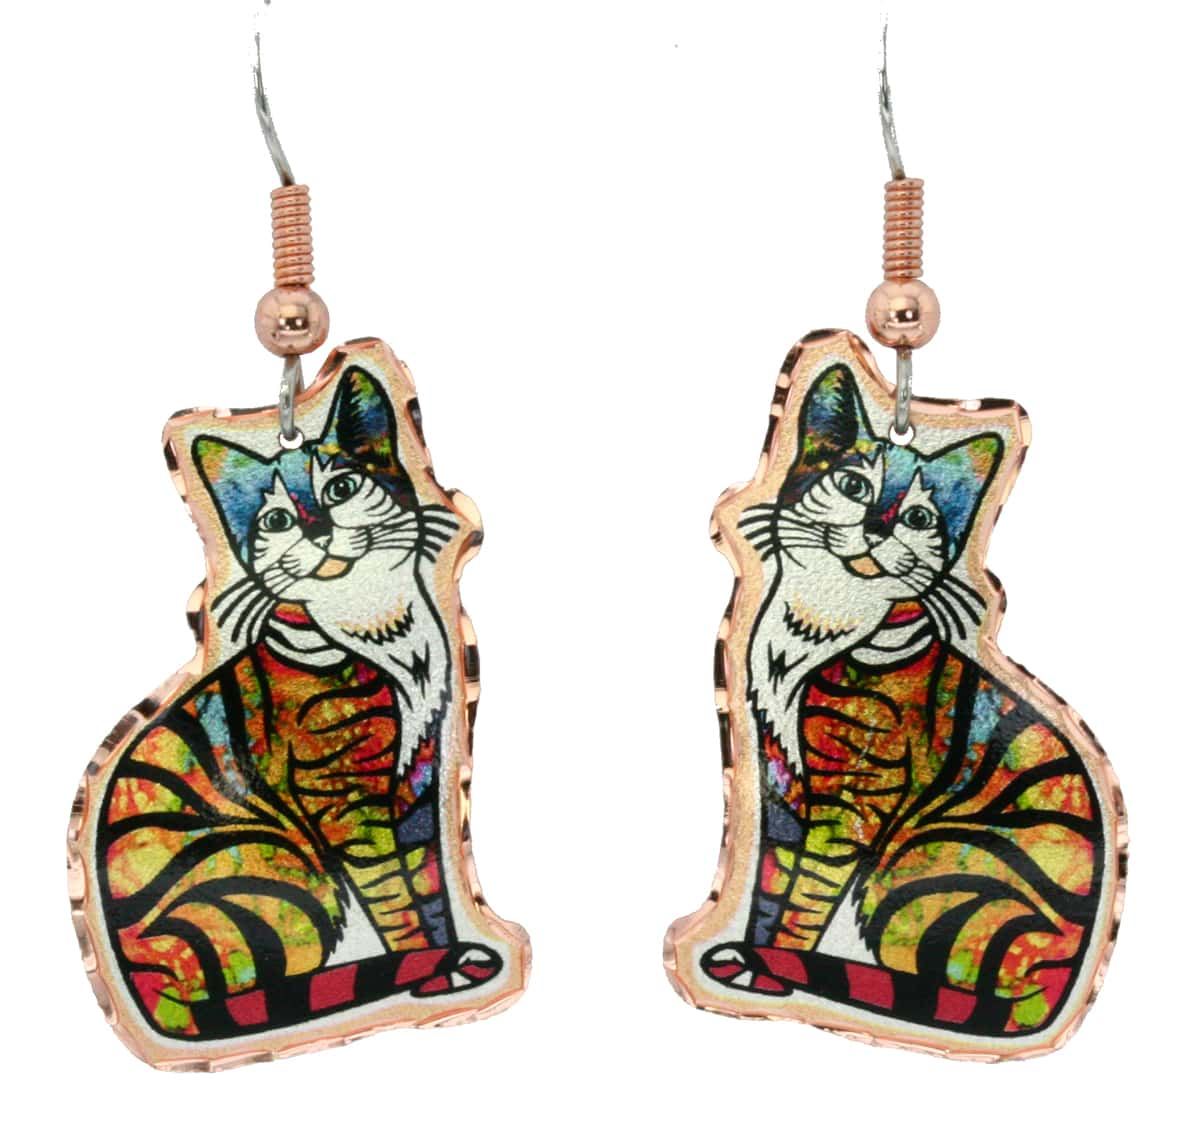 Cut Out Tabby Cat Earrings, Special Gifts for Cat Lovers